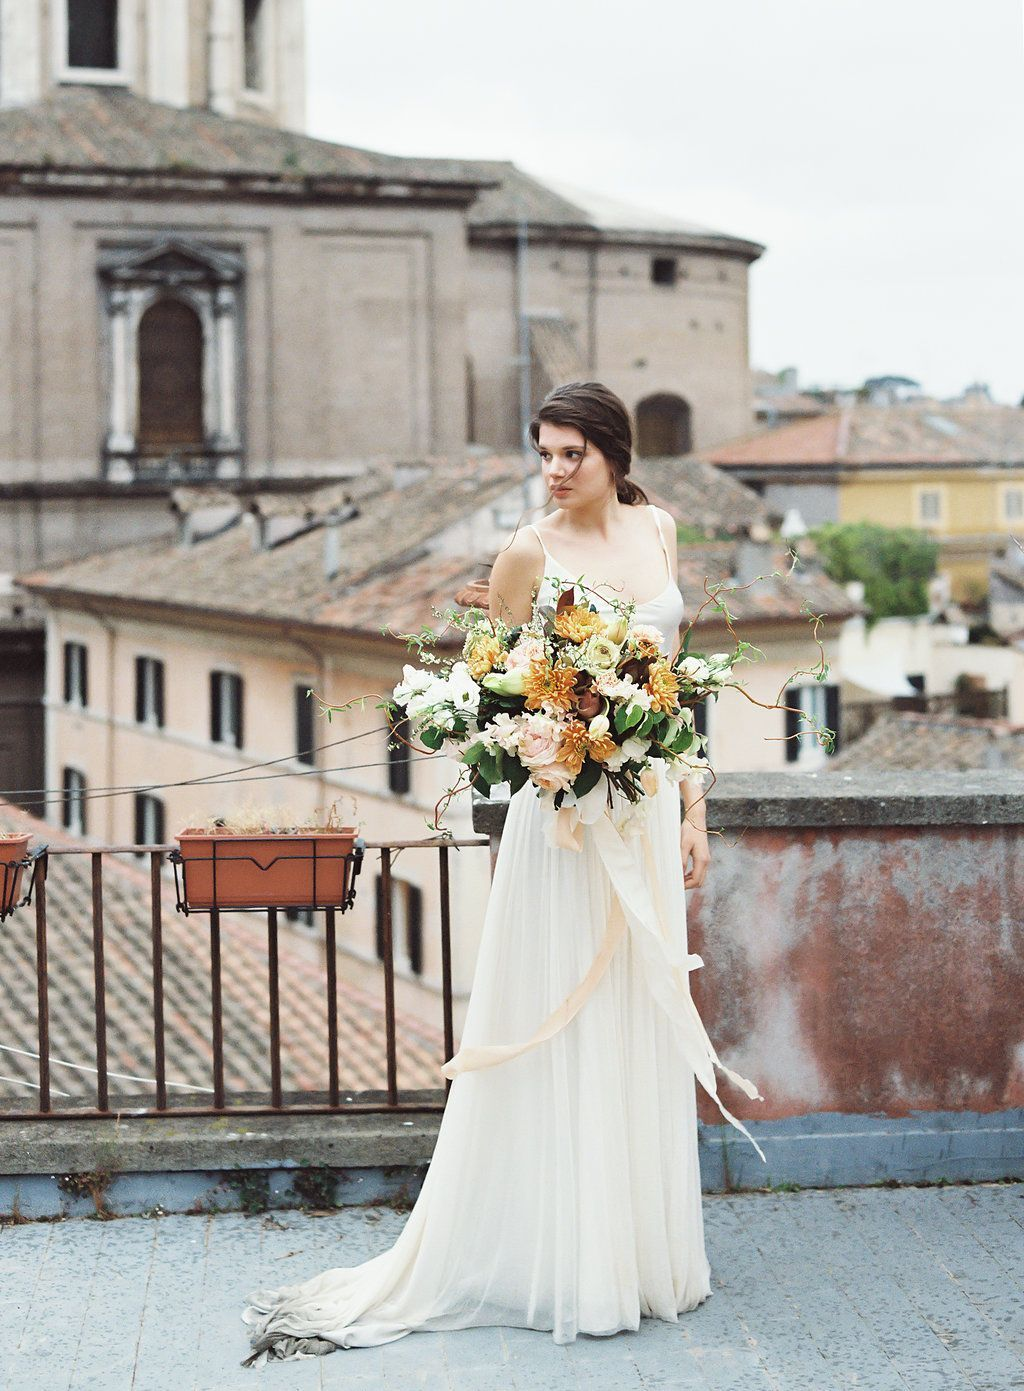 Vicki_Grafton_Photography_Rome_Italy_Wedding_Photographer_2017-156